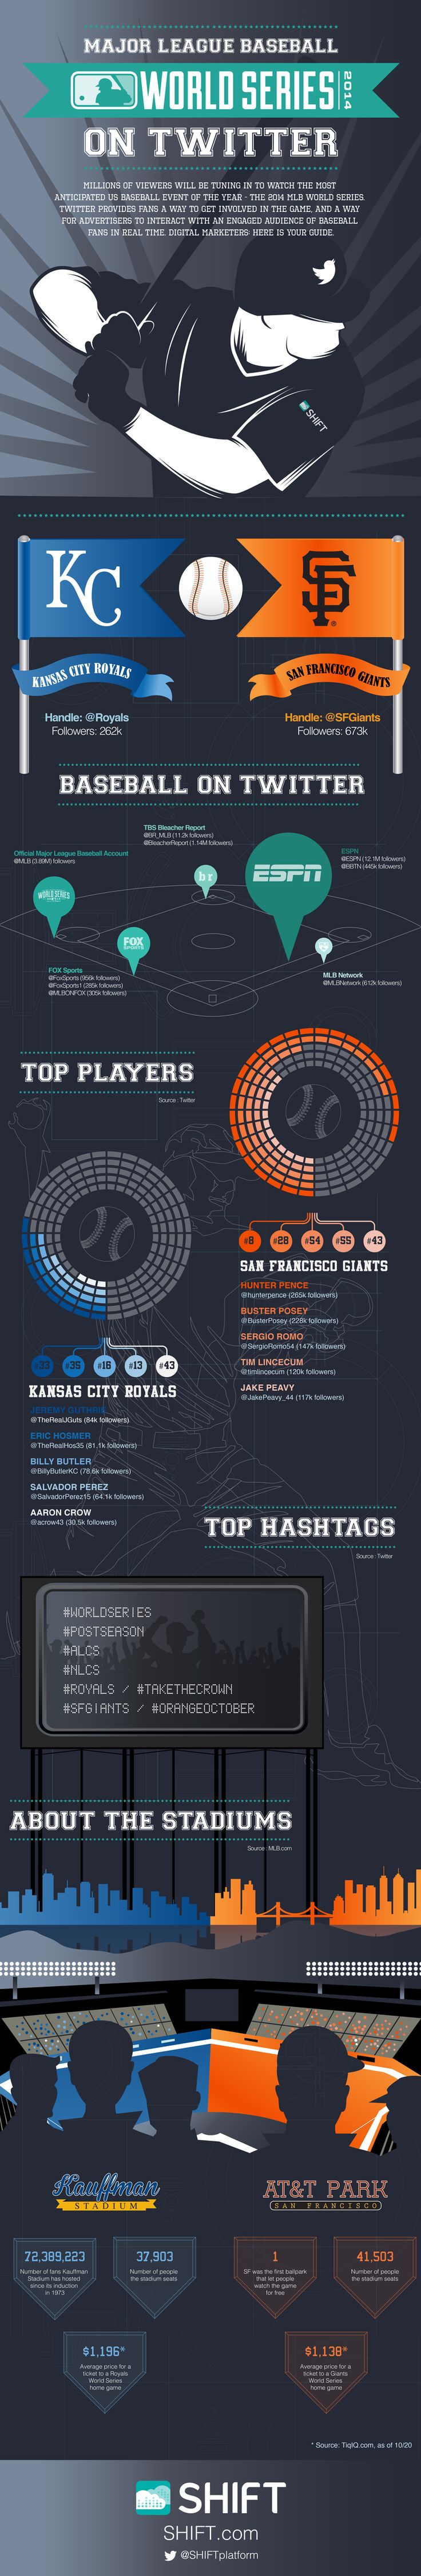 Marketer's Guide to the Major League Baseball World Series (on Twitter)